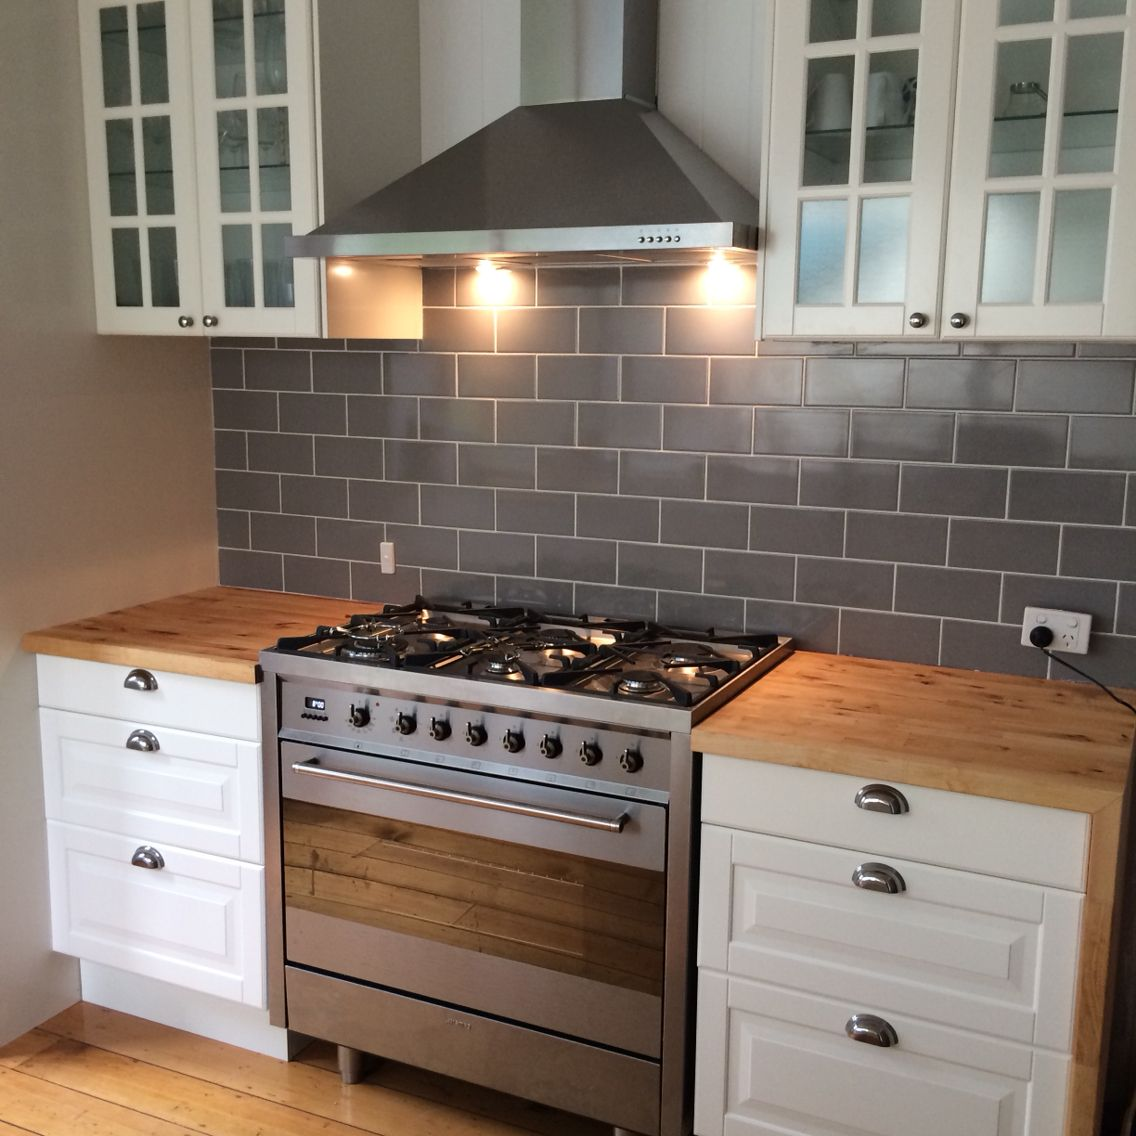 Freestanding smeg oven, teamed with off white traditional cabinetry ...